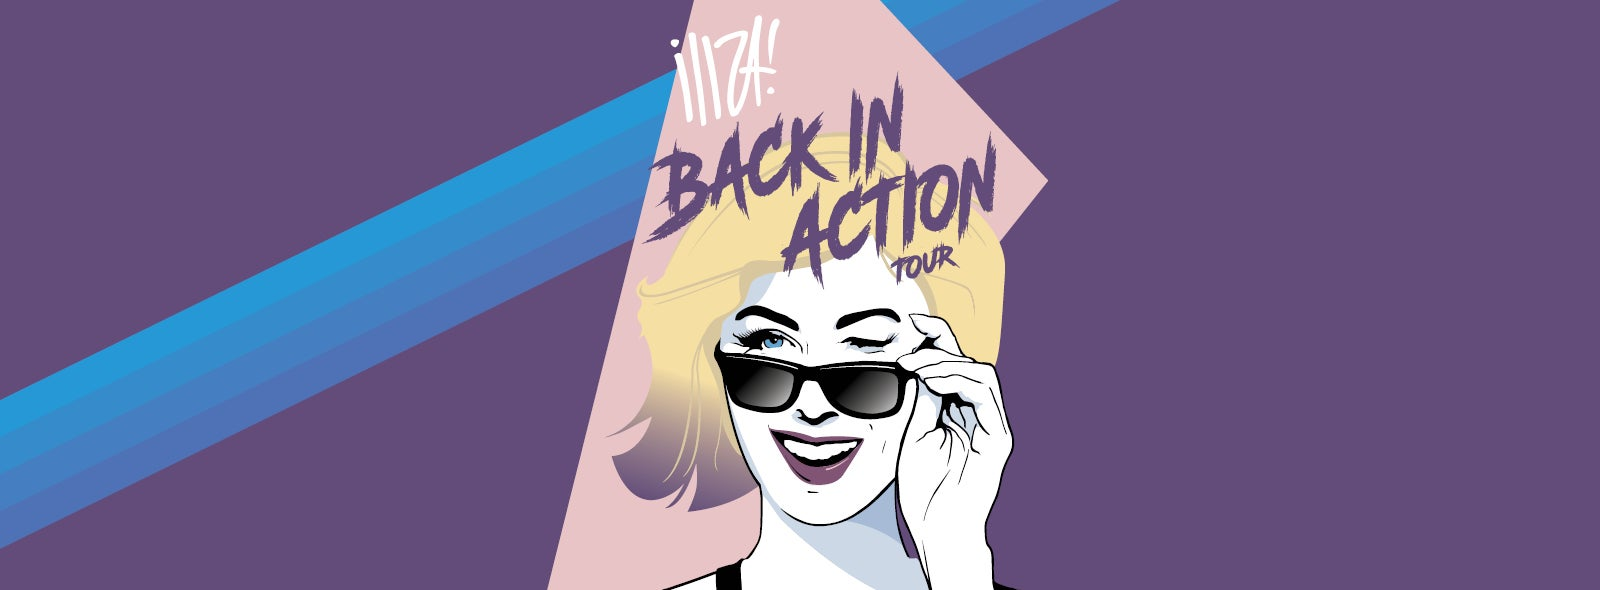 Iliza: Back in Action